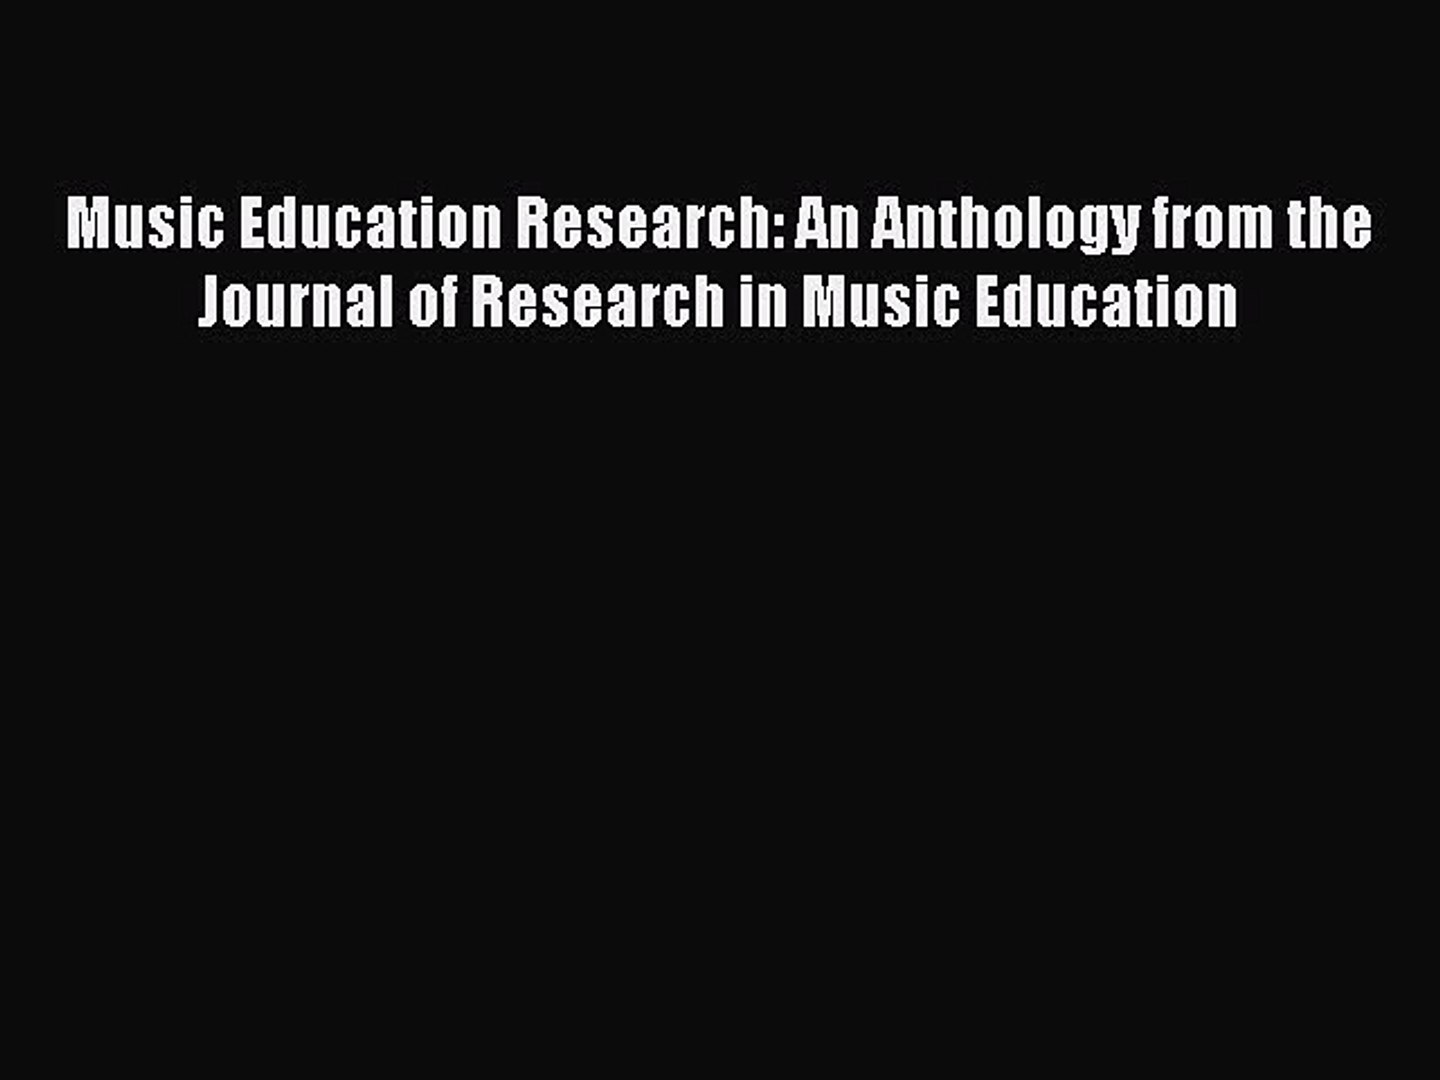 Download Music Education Research: An Anthology from the Journal of Research in Music Education